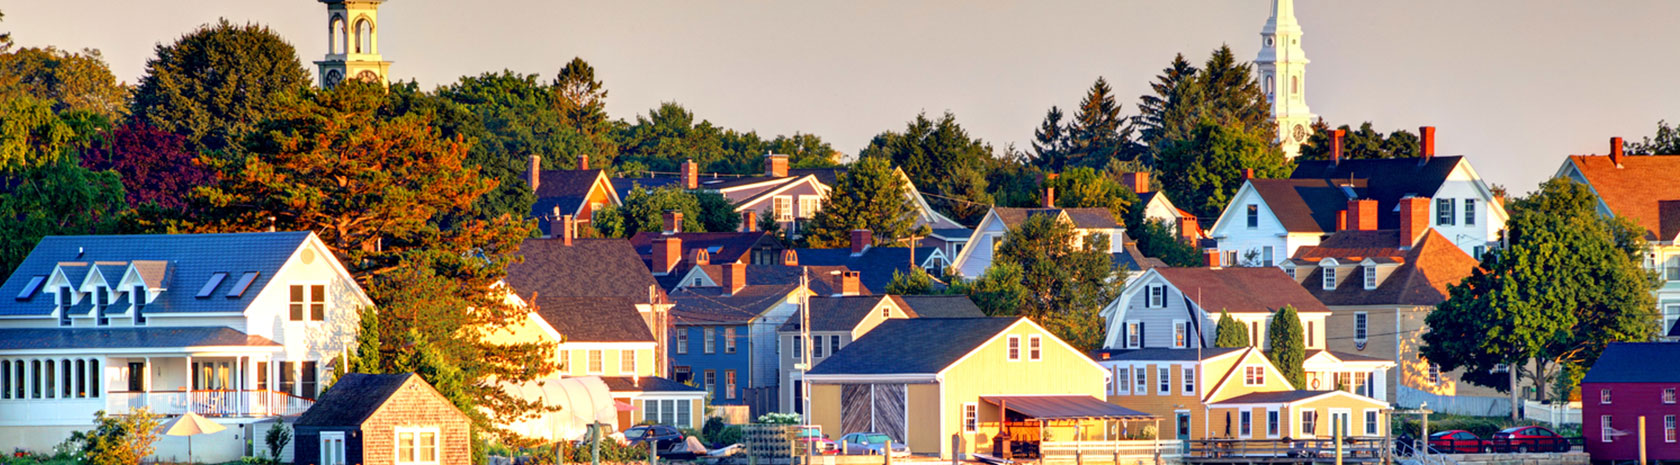 Rooftops and treetops of a tightly packed, small town that is nicely up-kept during early morning